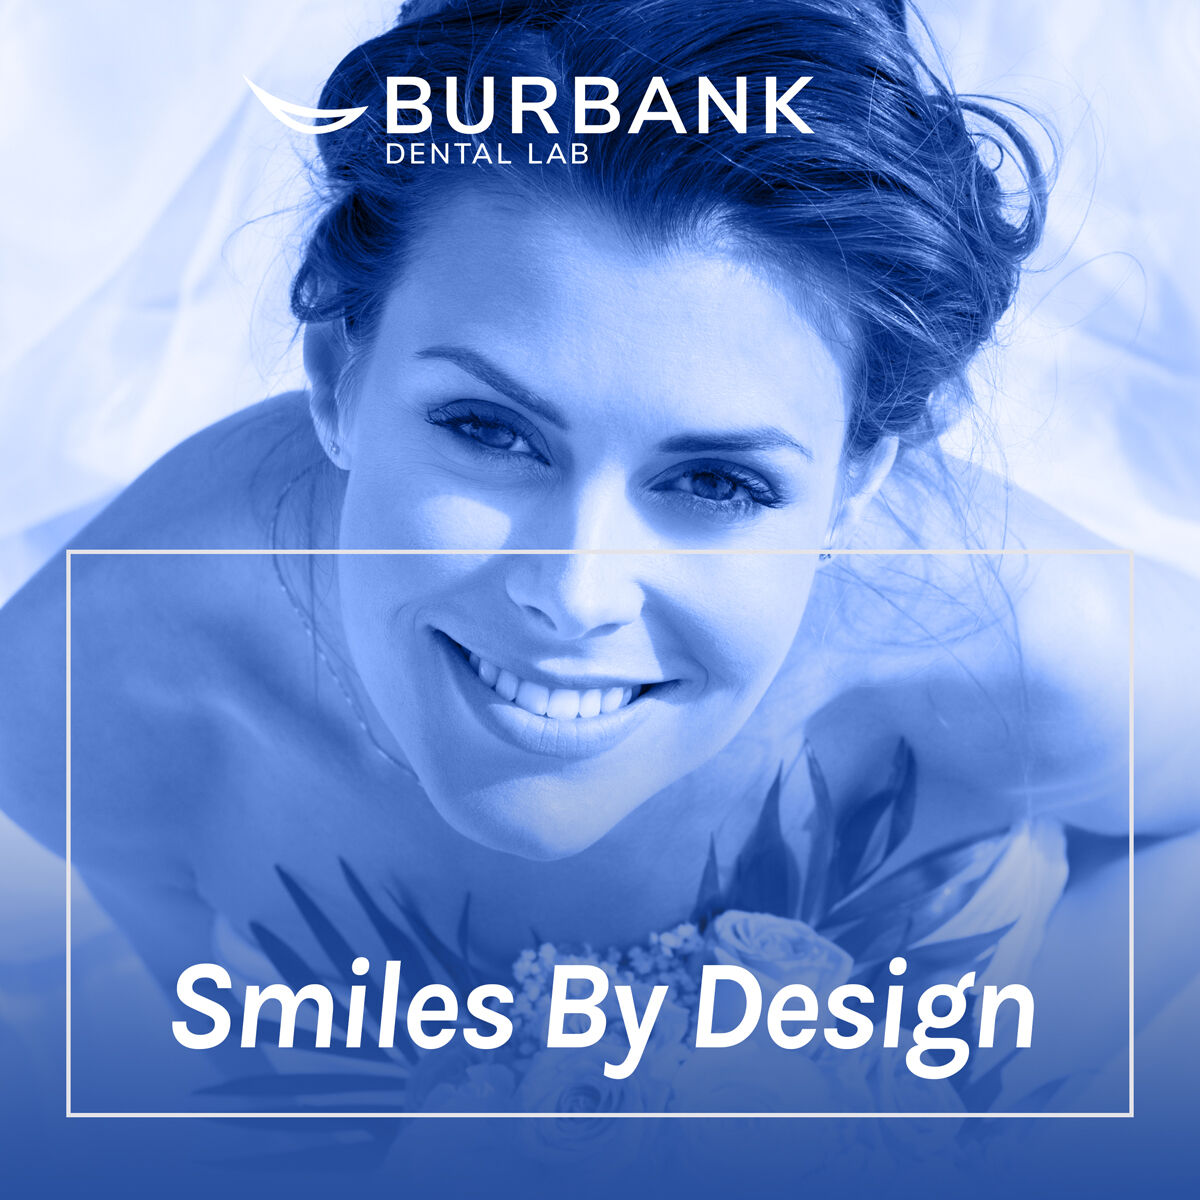 The Smiles By Design Team are experts in smile design and dedicated to excellence in tooth morphology, occlusion, and internal color characterization. We want to be your team in creating beautiful smiles.  #SmilesByDesign  #cosmeticdentistry #Smile #dental